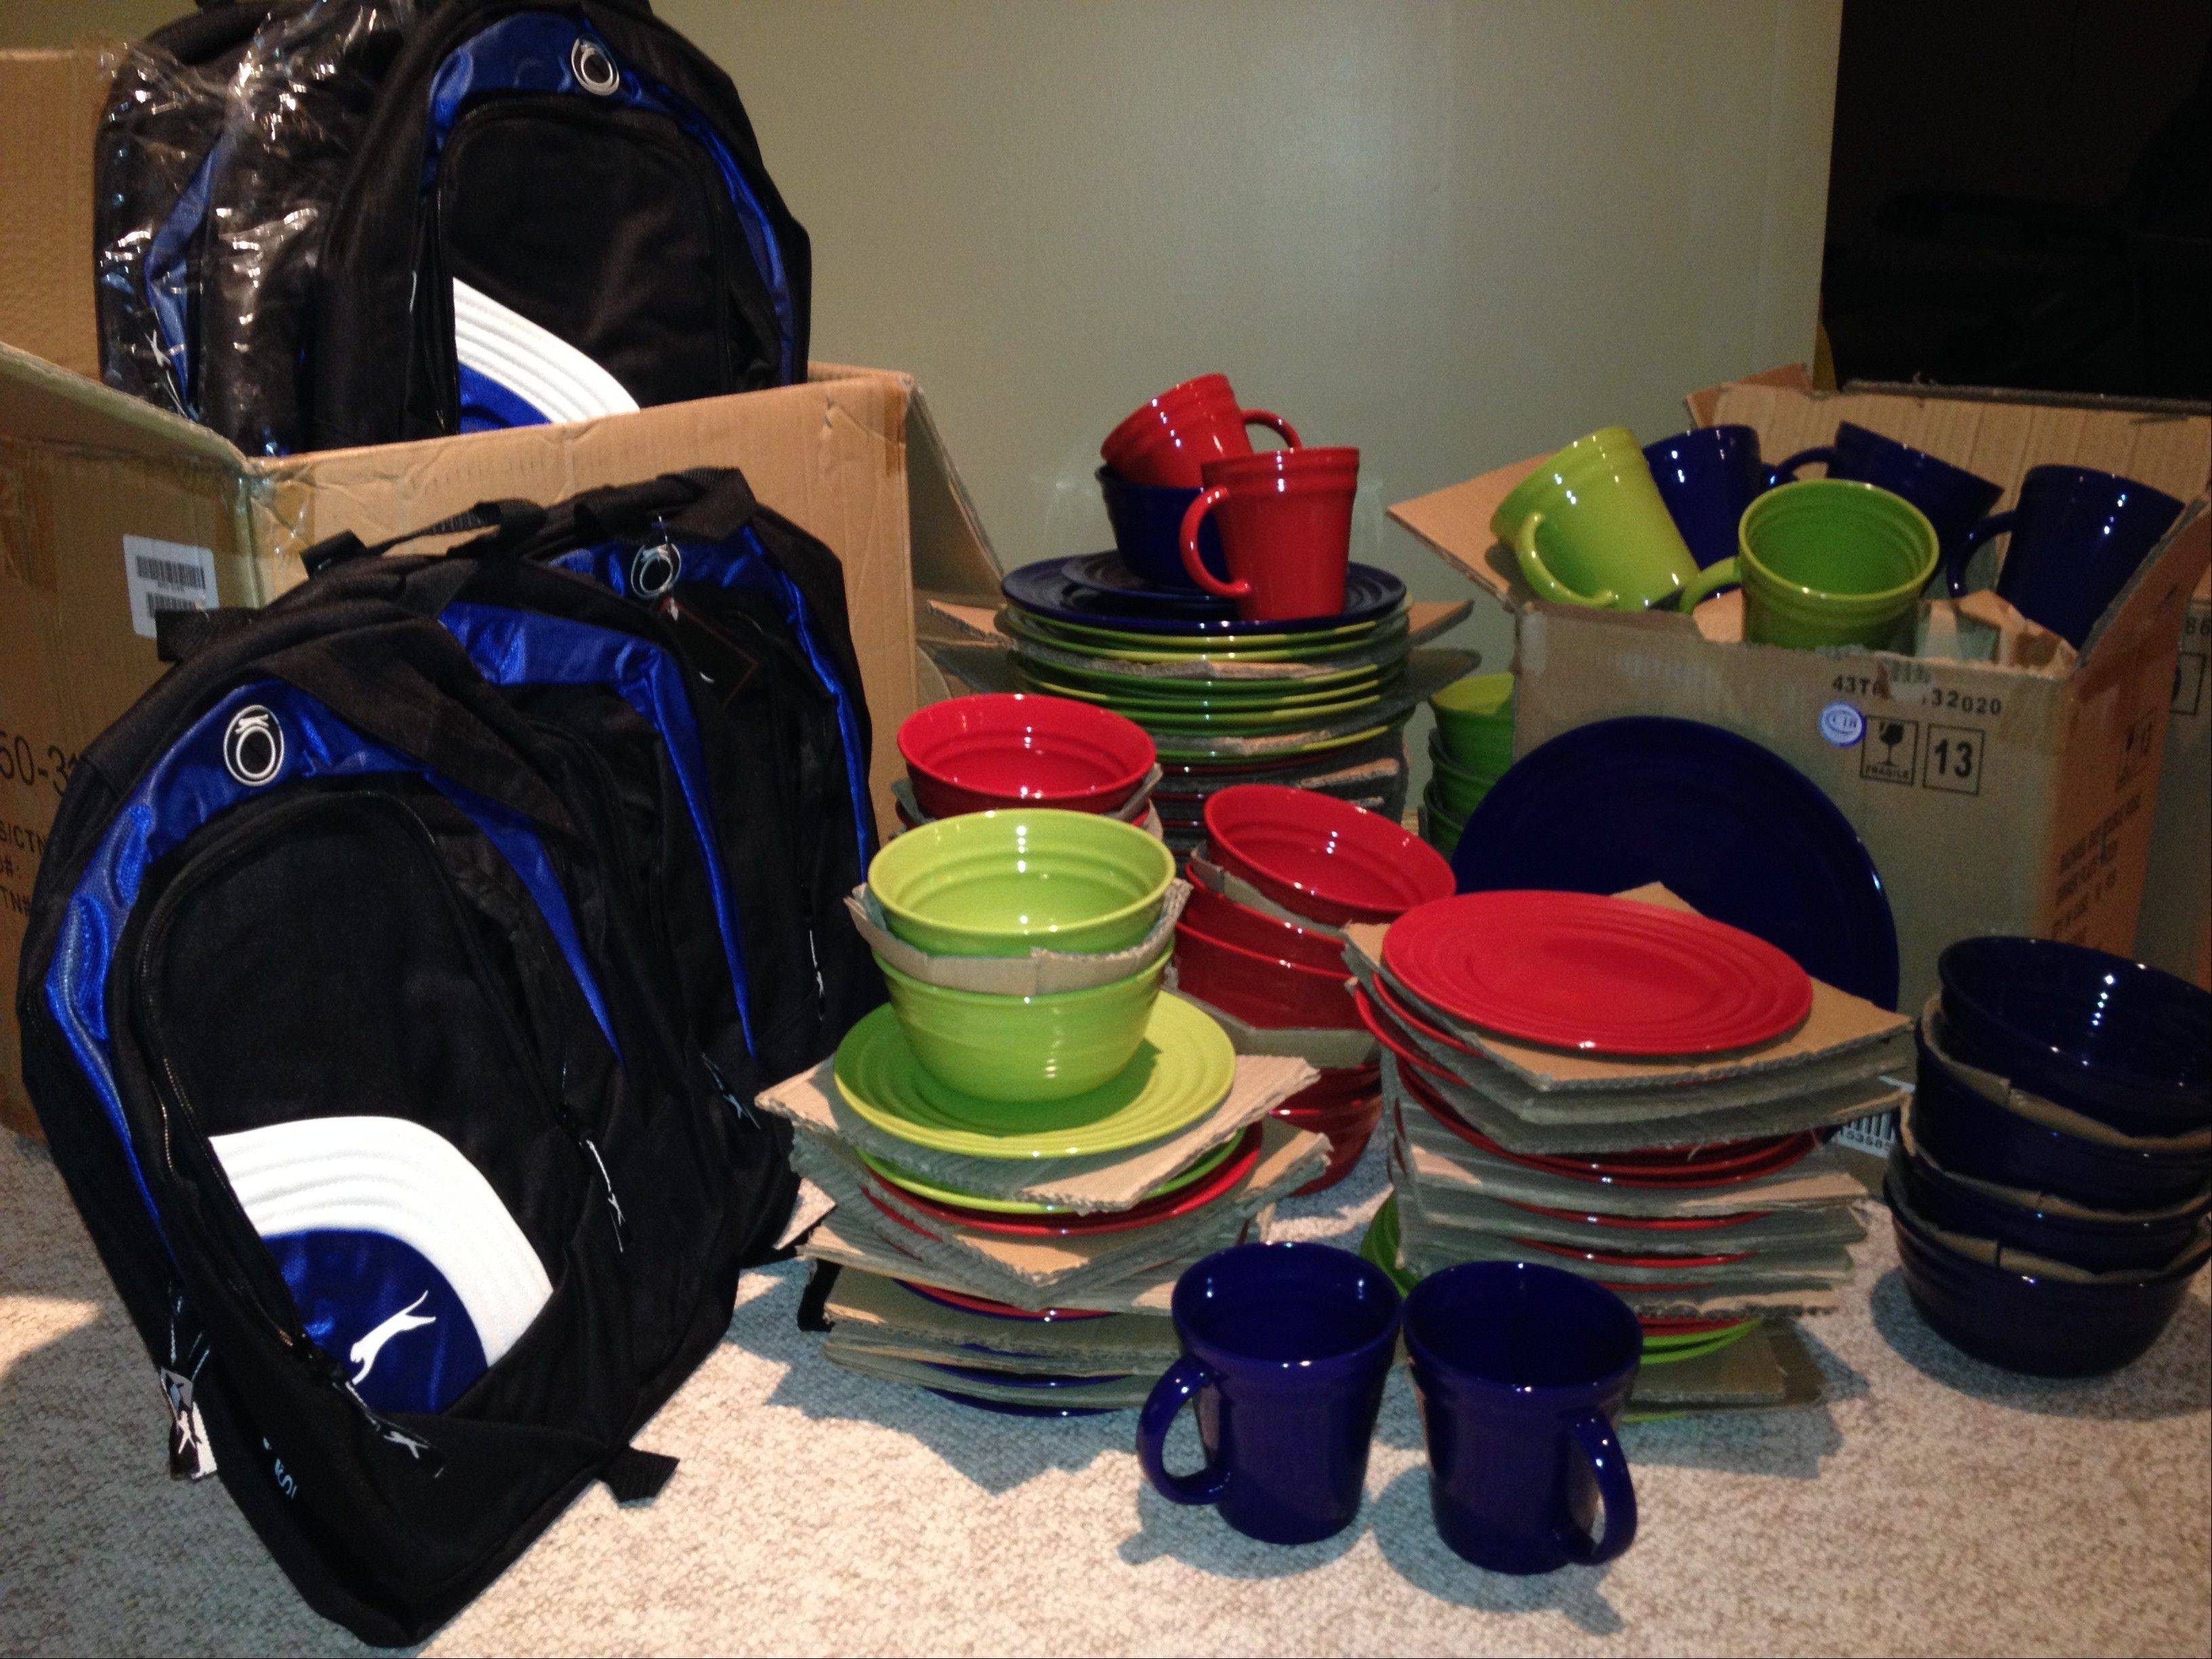 Backpacks of school supplies, food, new dishes and clothing are among the items collected by CHIP IN Batavia. $PHOTOCREDIT_ON$courtesy of Joanne Spitz $PHOTOCREDIT_OFF$